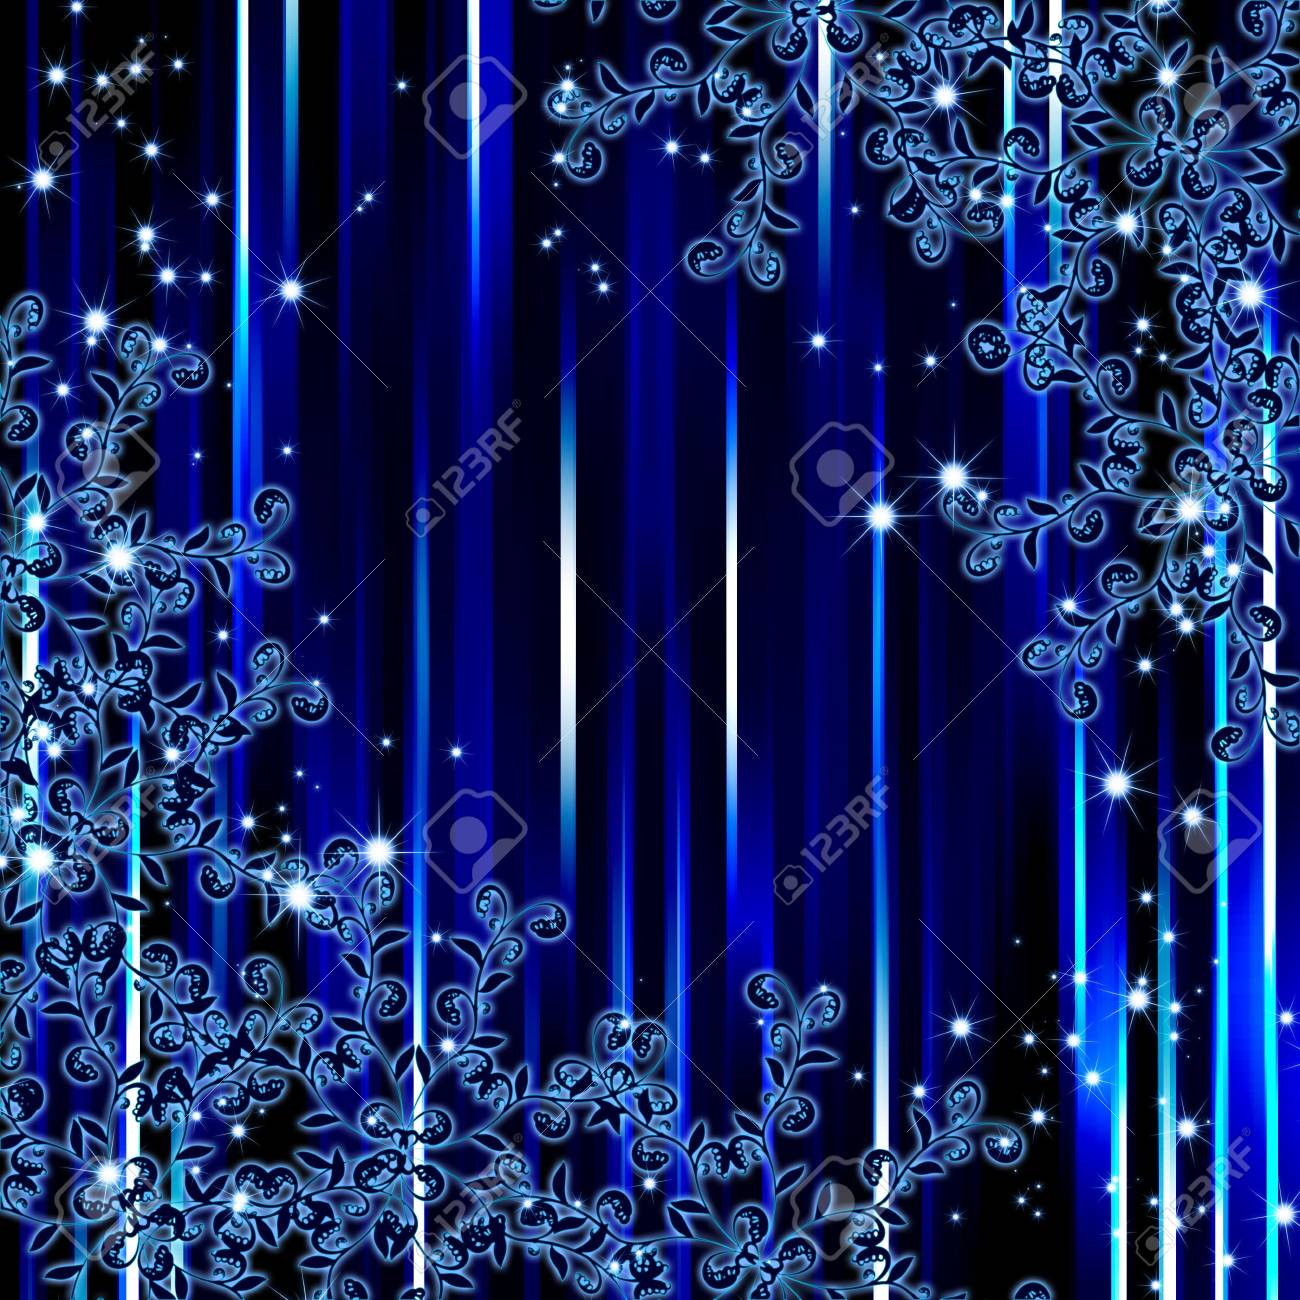 abstract blue stripe floral frame background Stock Photo - 6187715